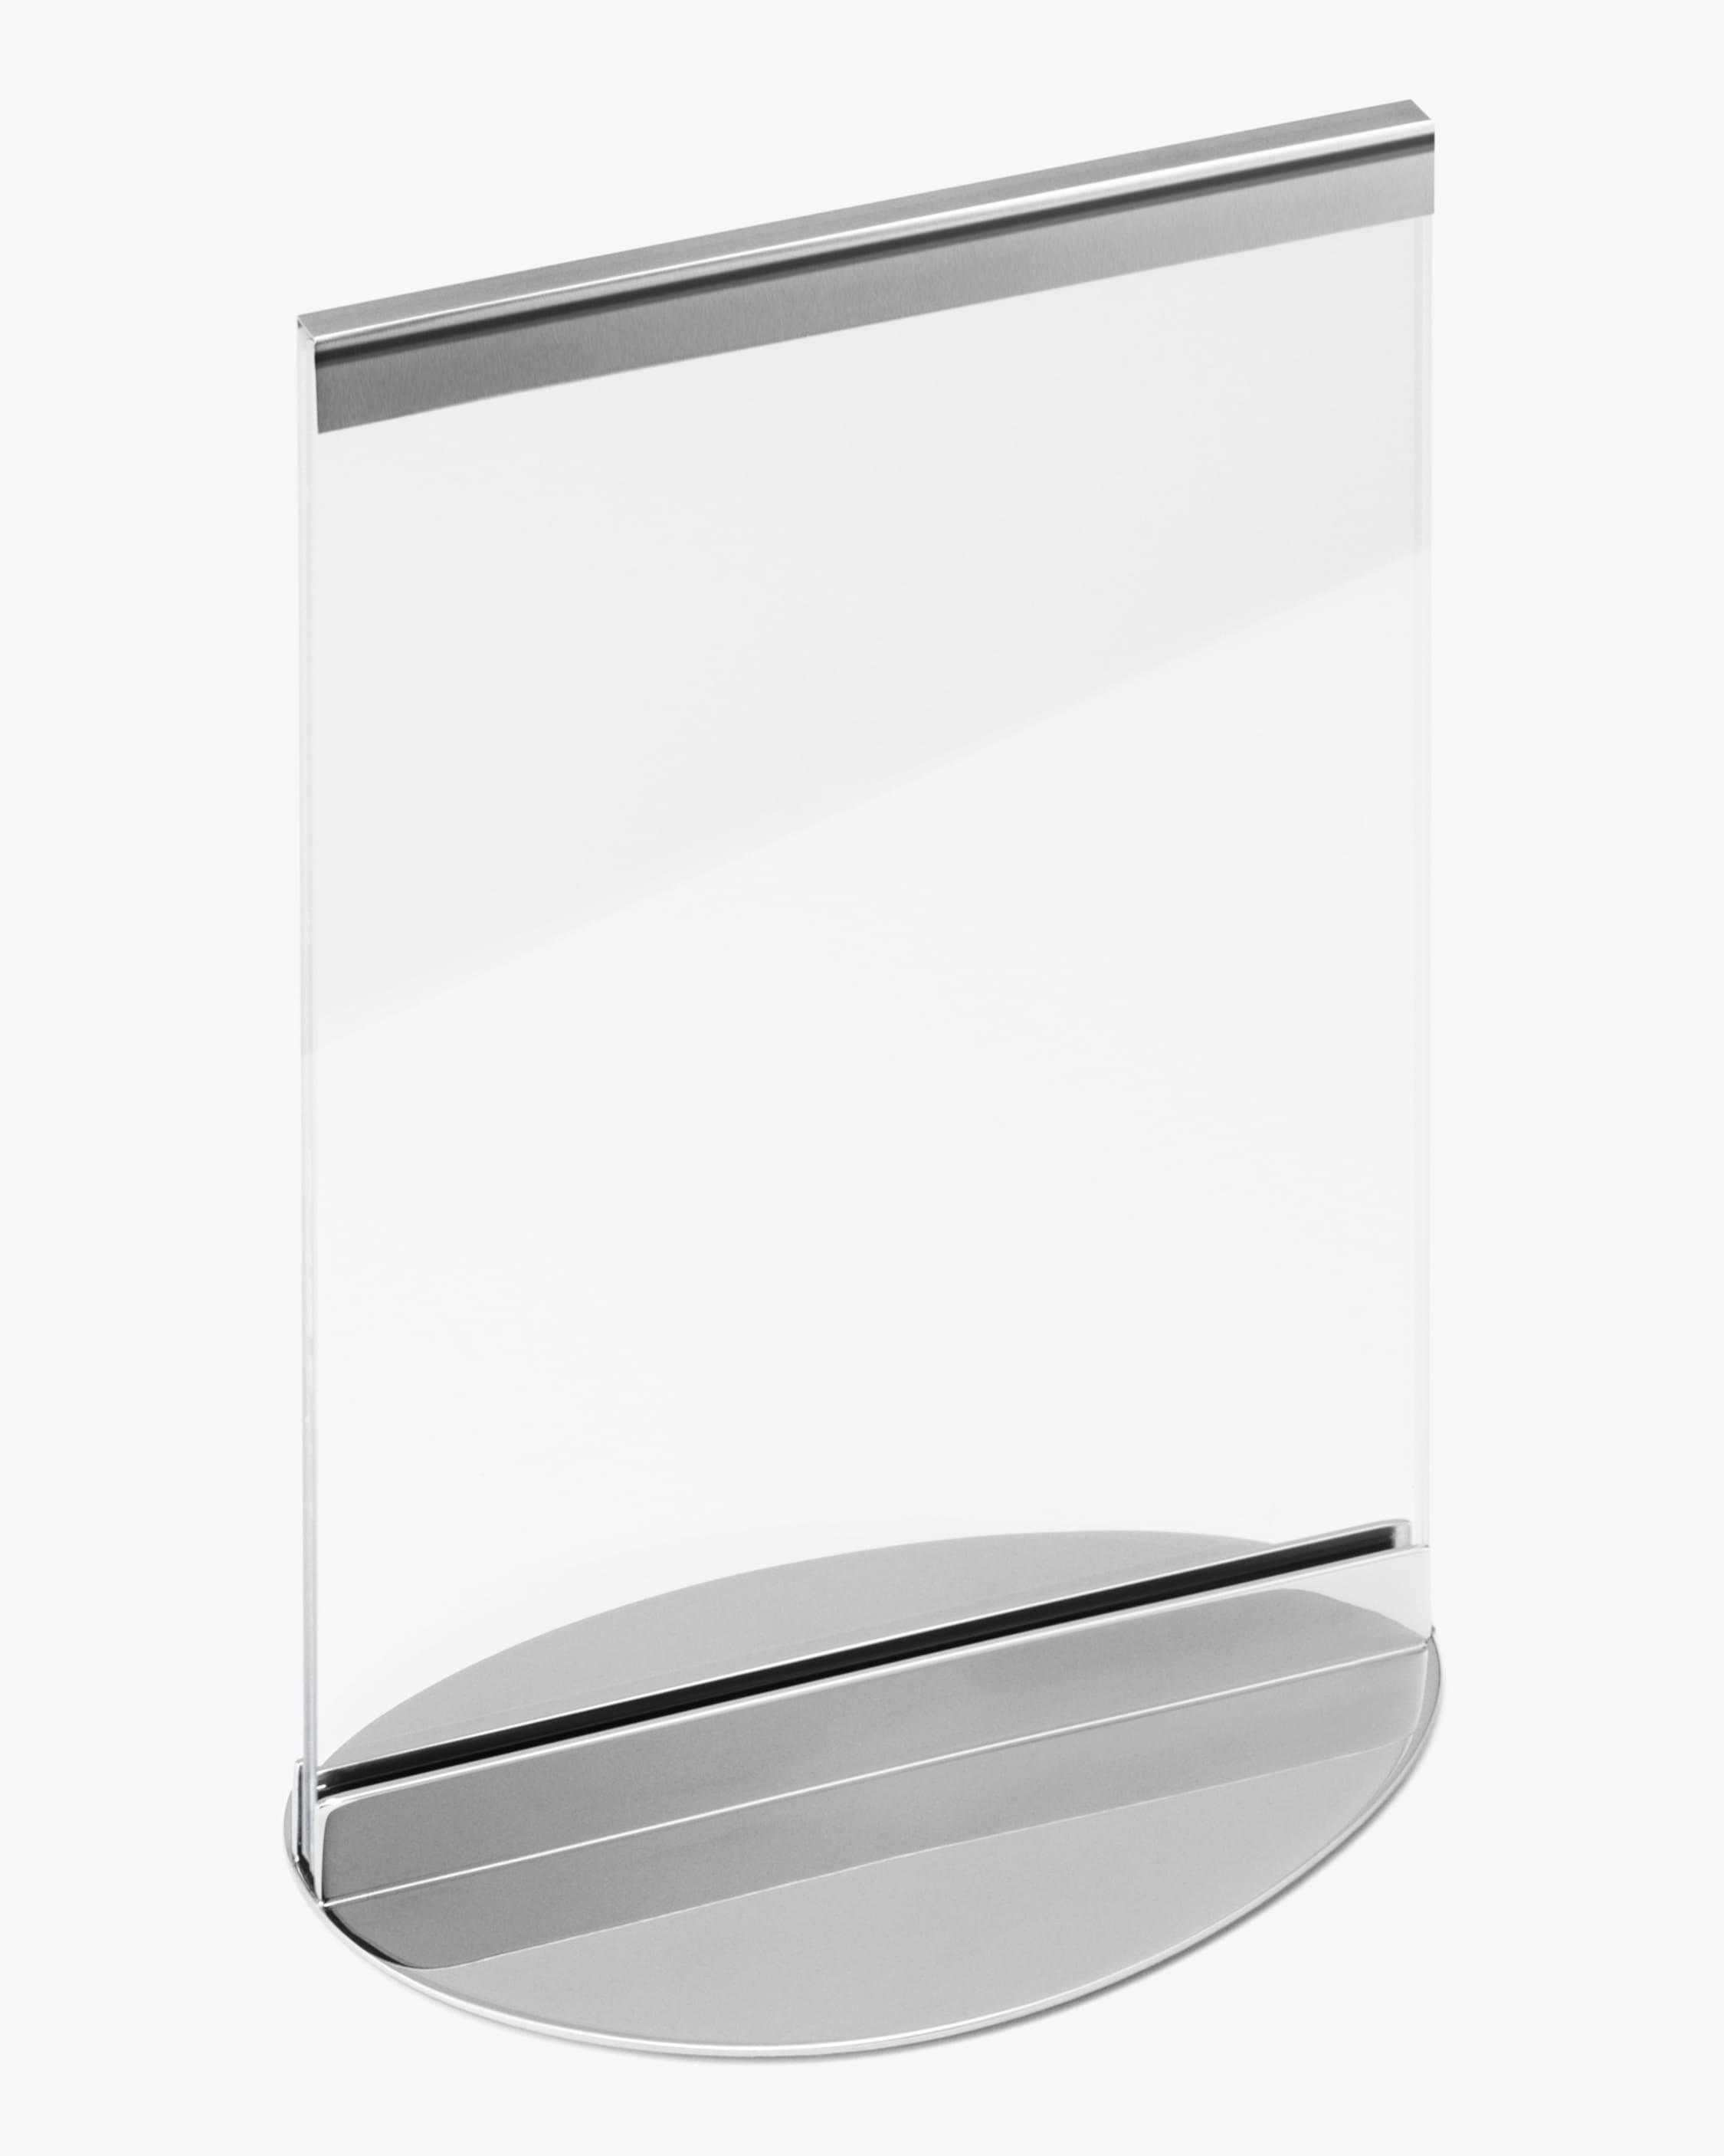 Georg Jensen Sky Stainless Steel Picture Frame - 4x6 1